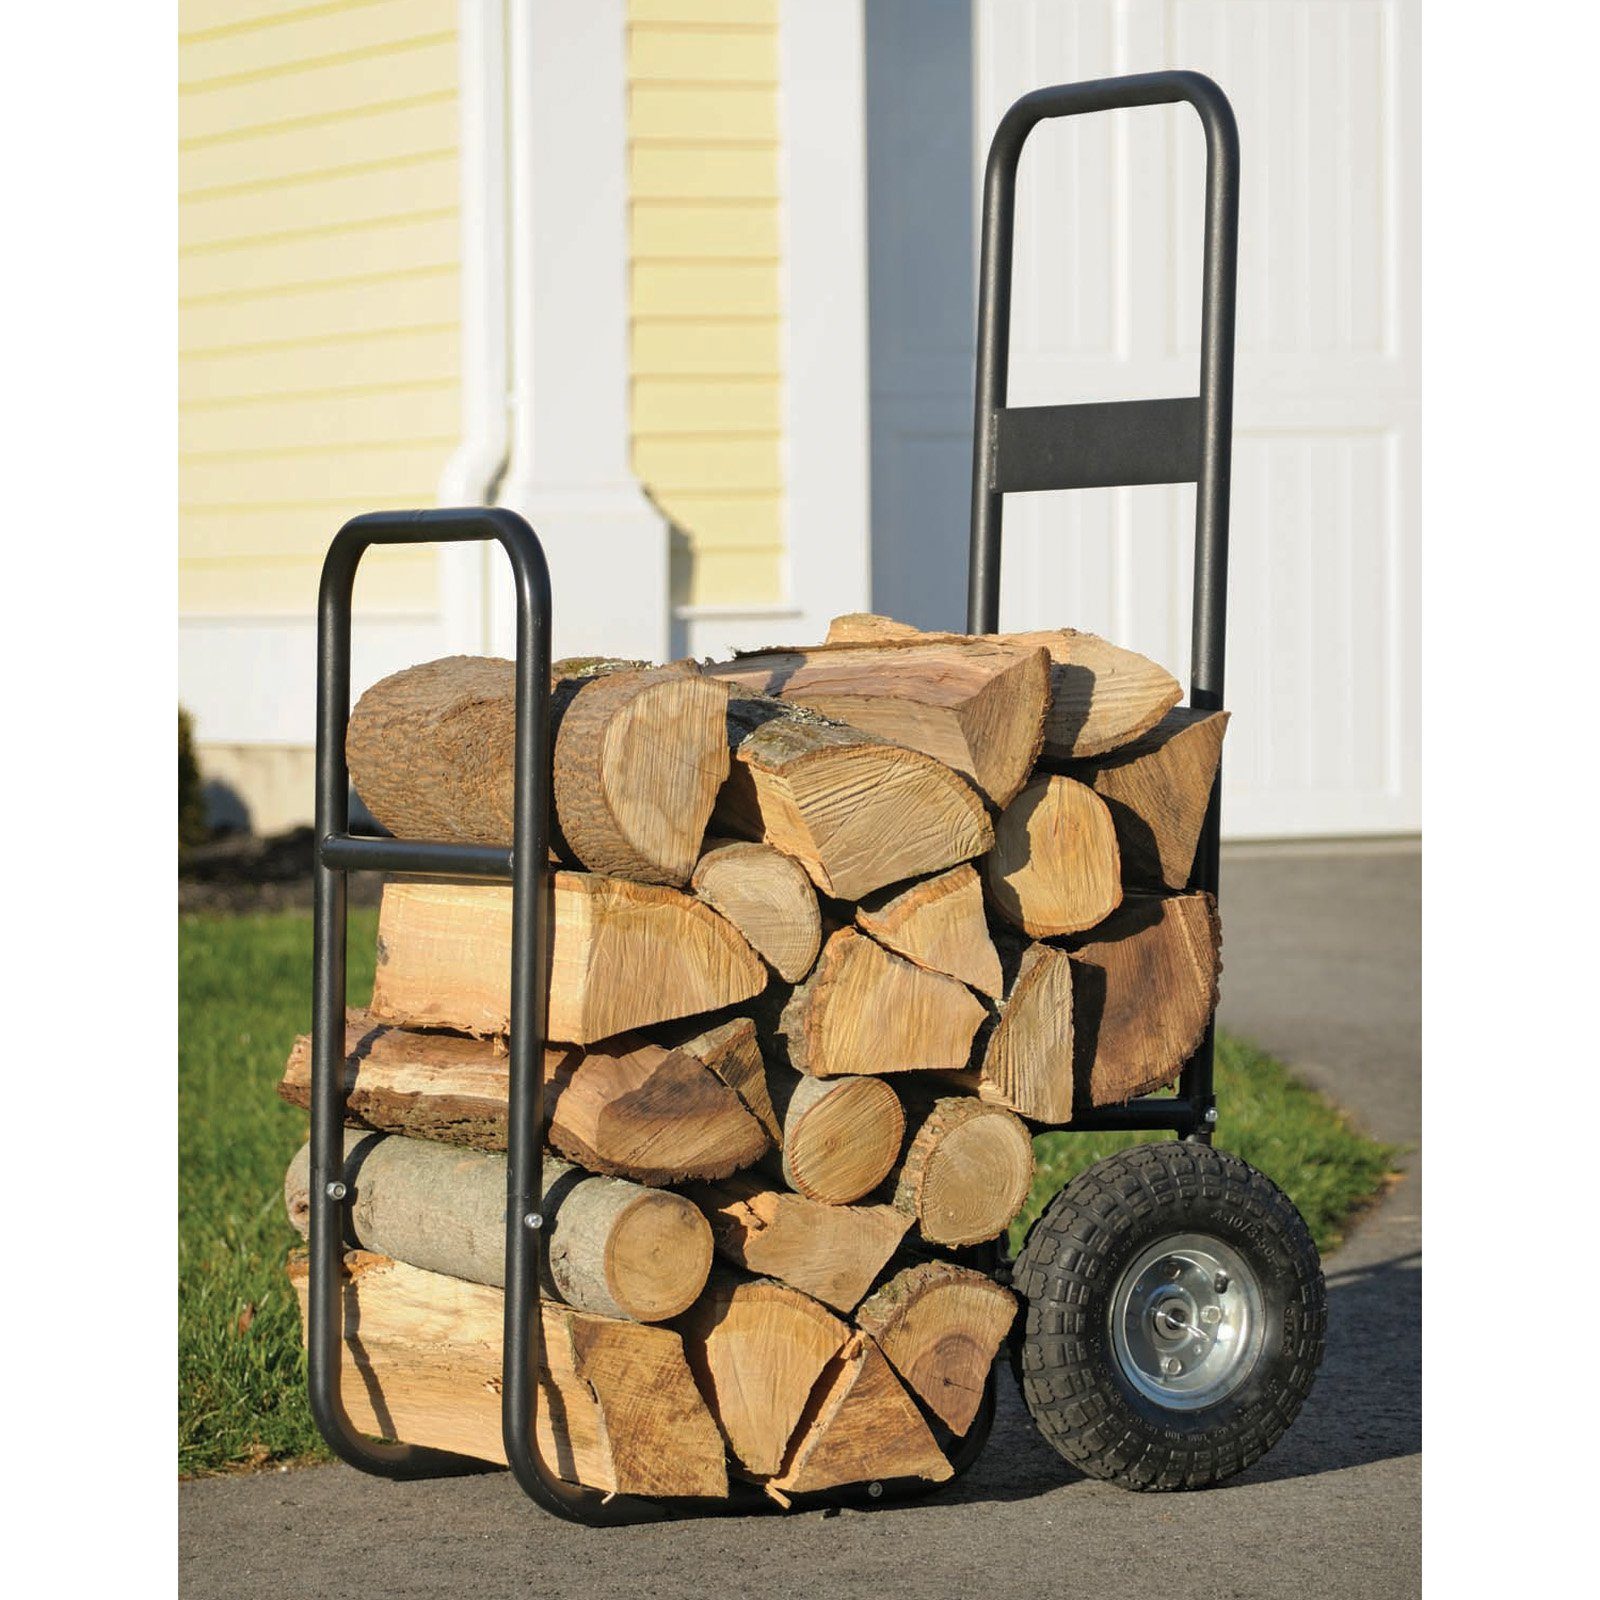 Haul-It Wood Mover Rolling Firewood Cart by ShelterLogic